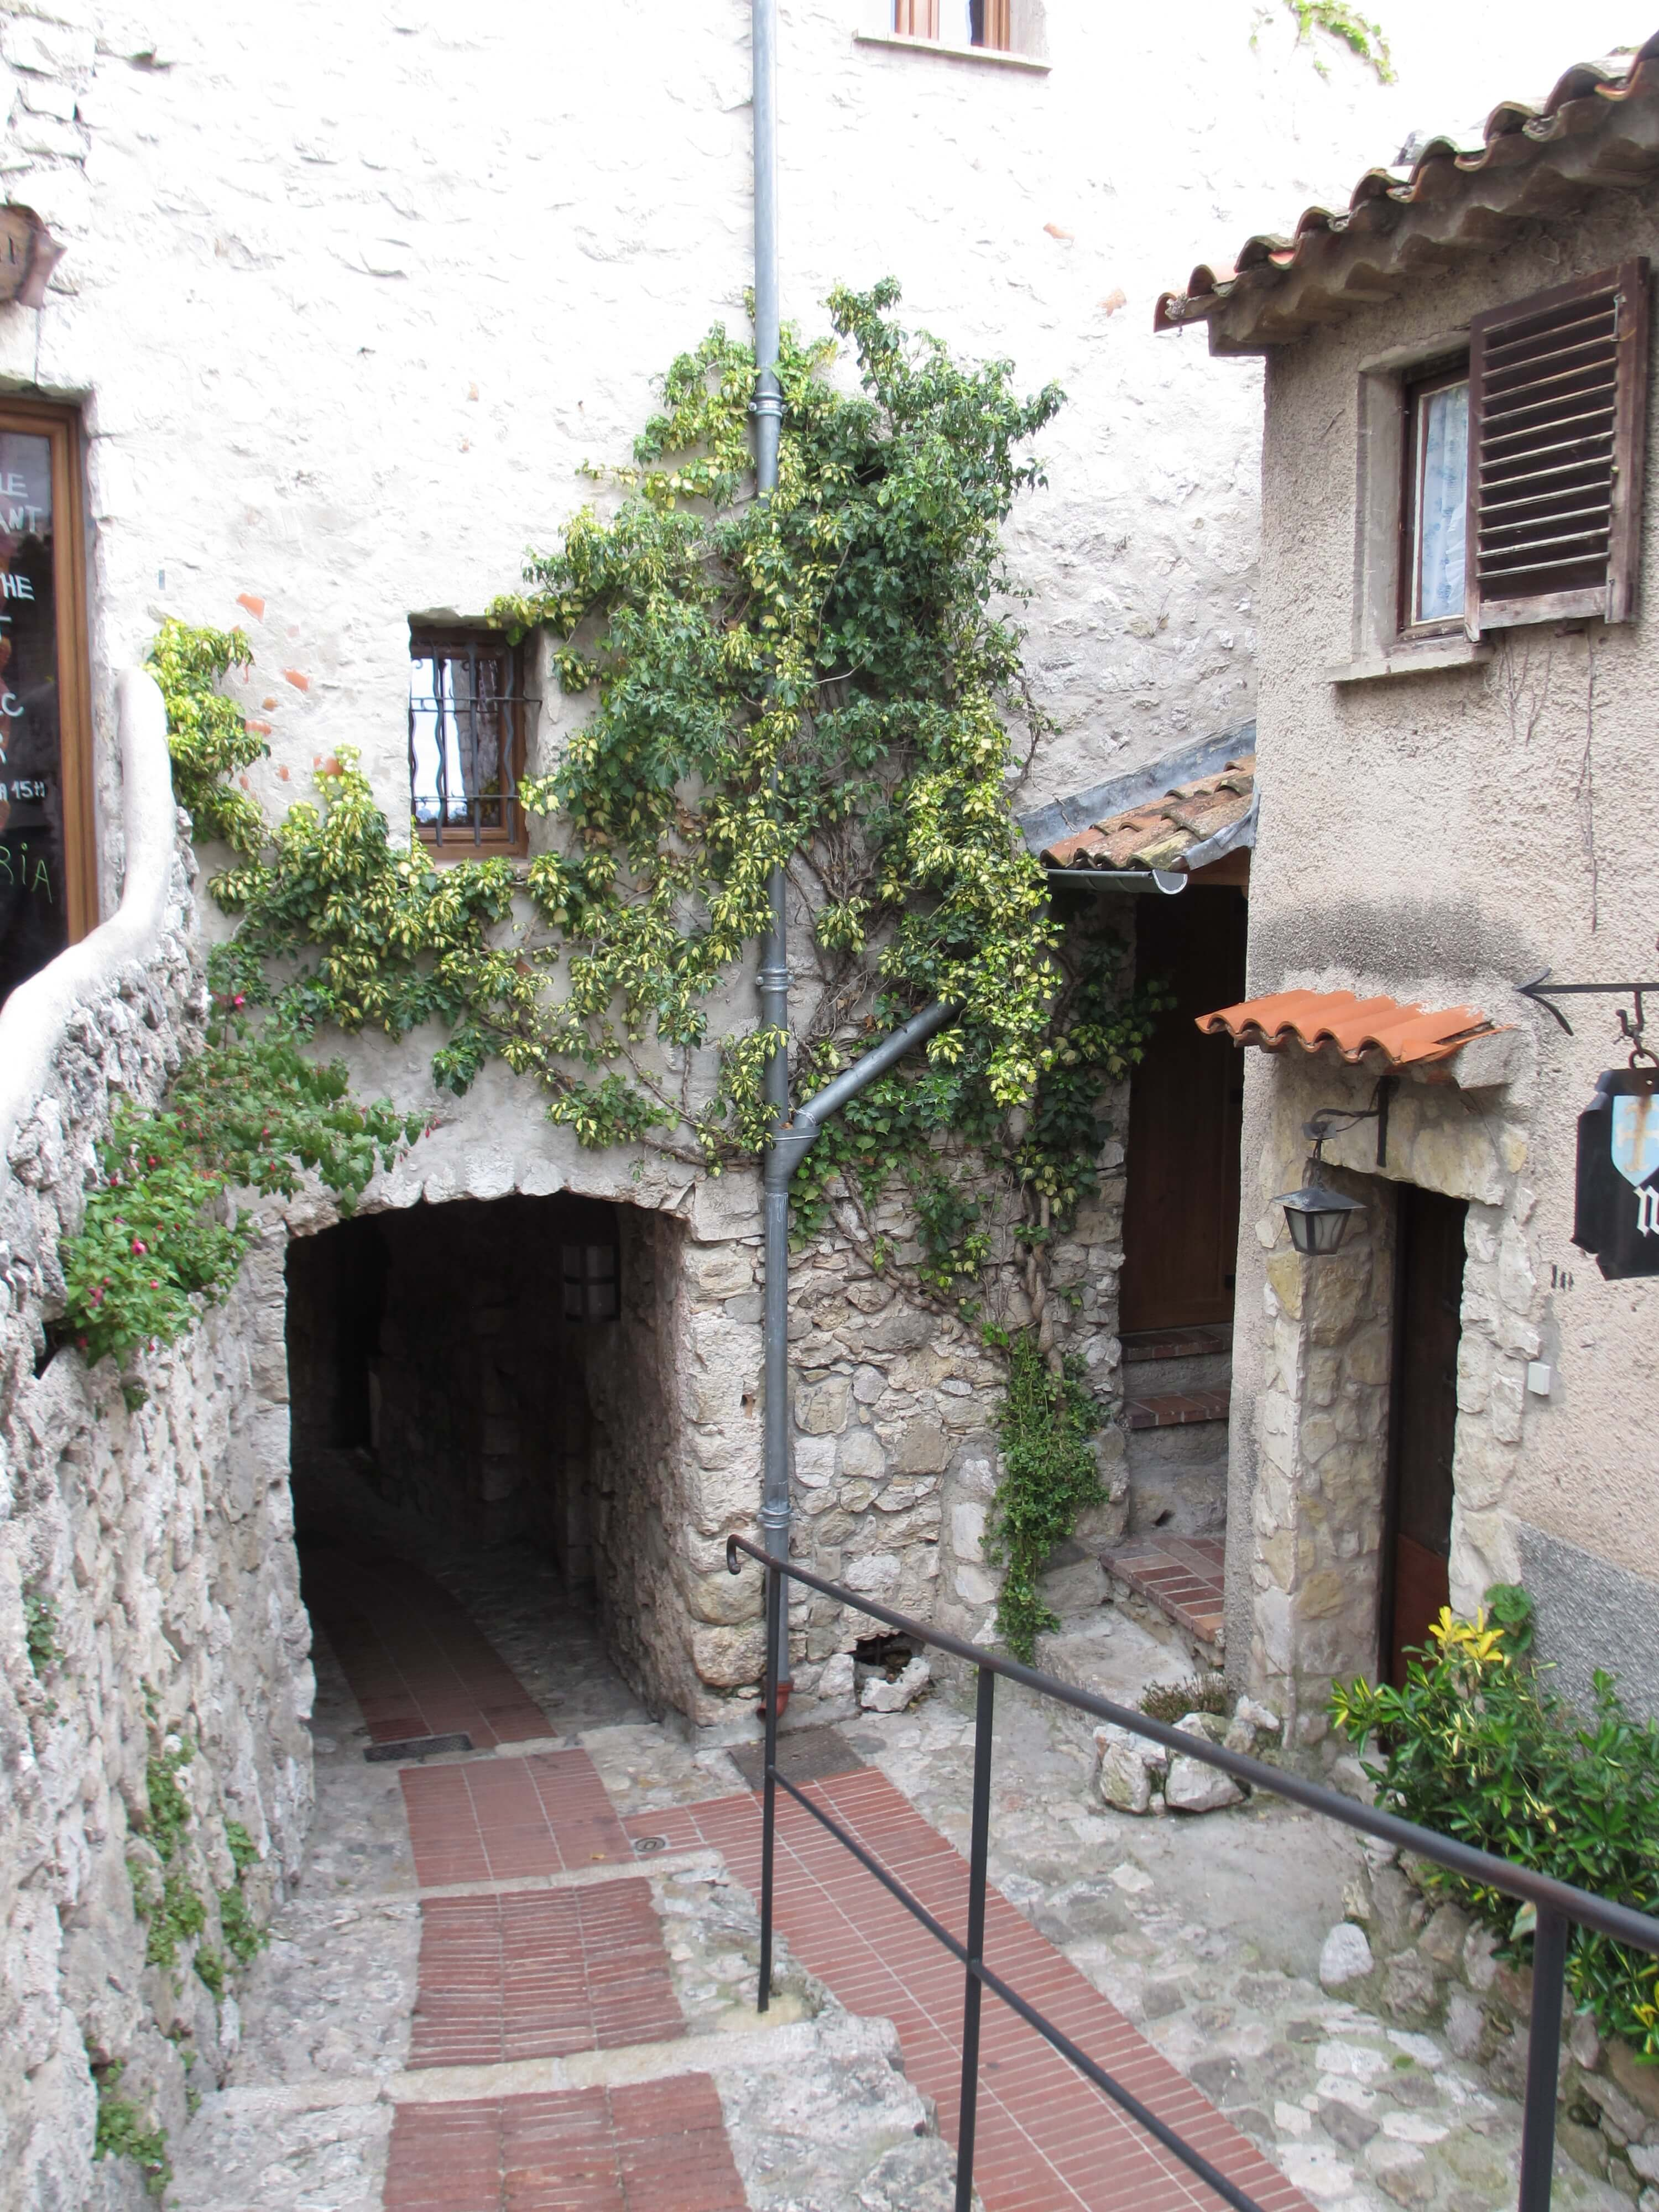 The pretty hilltop town of Eze is an easy half day trip up the Corniche - great views en route make it even better!